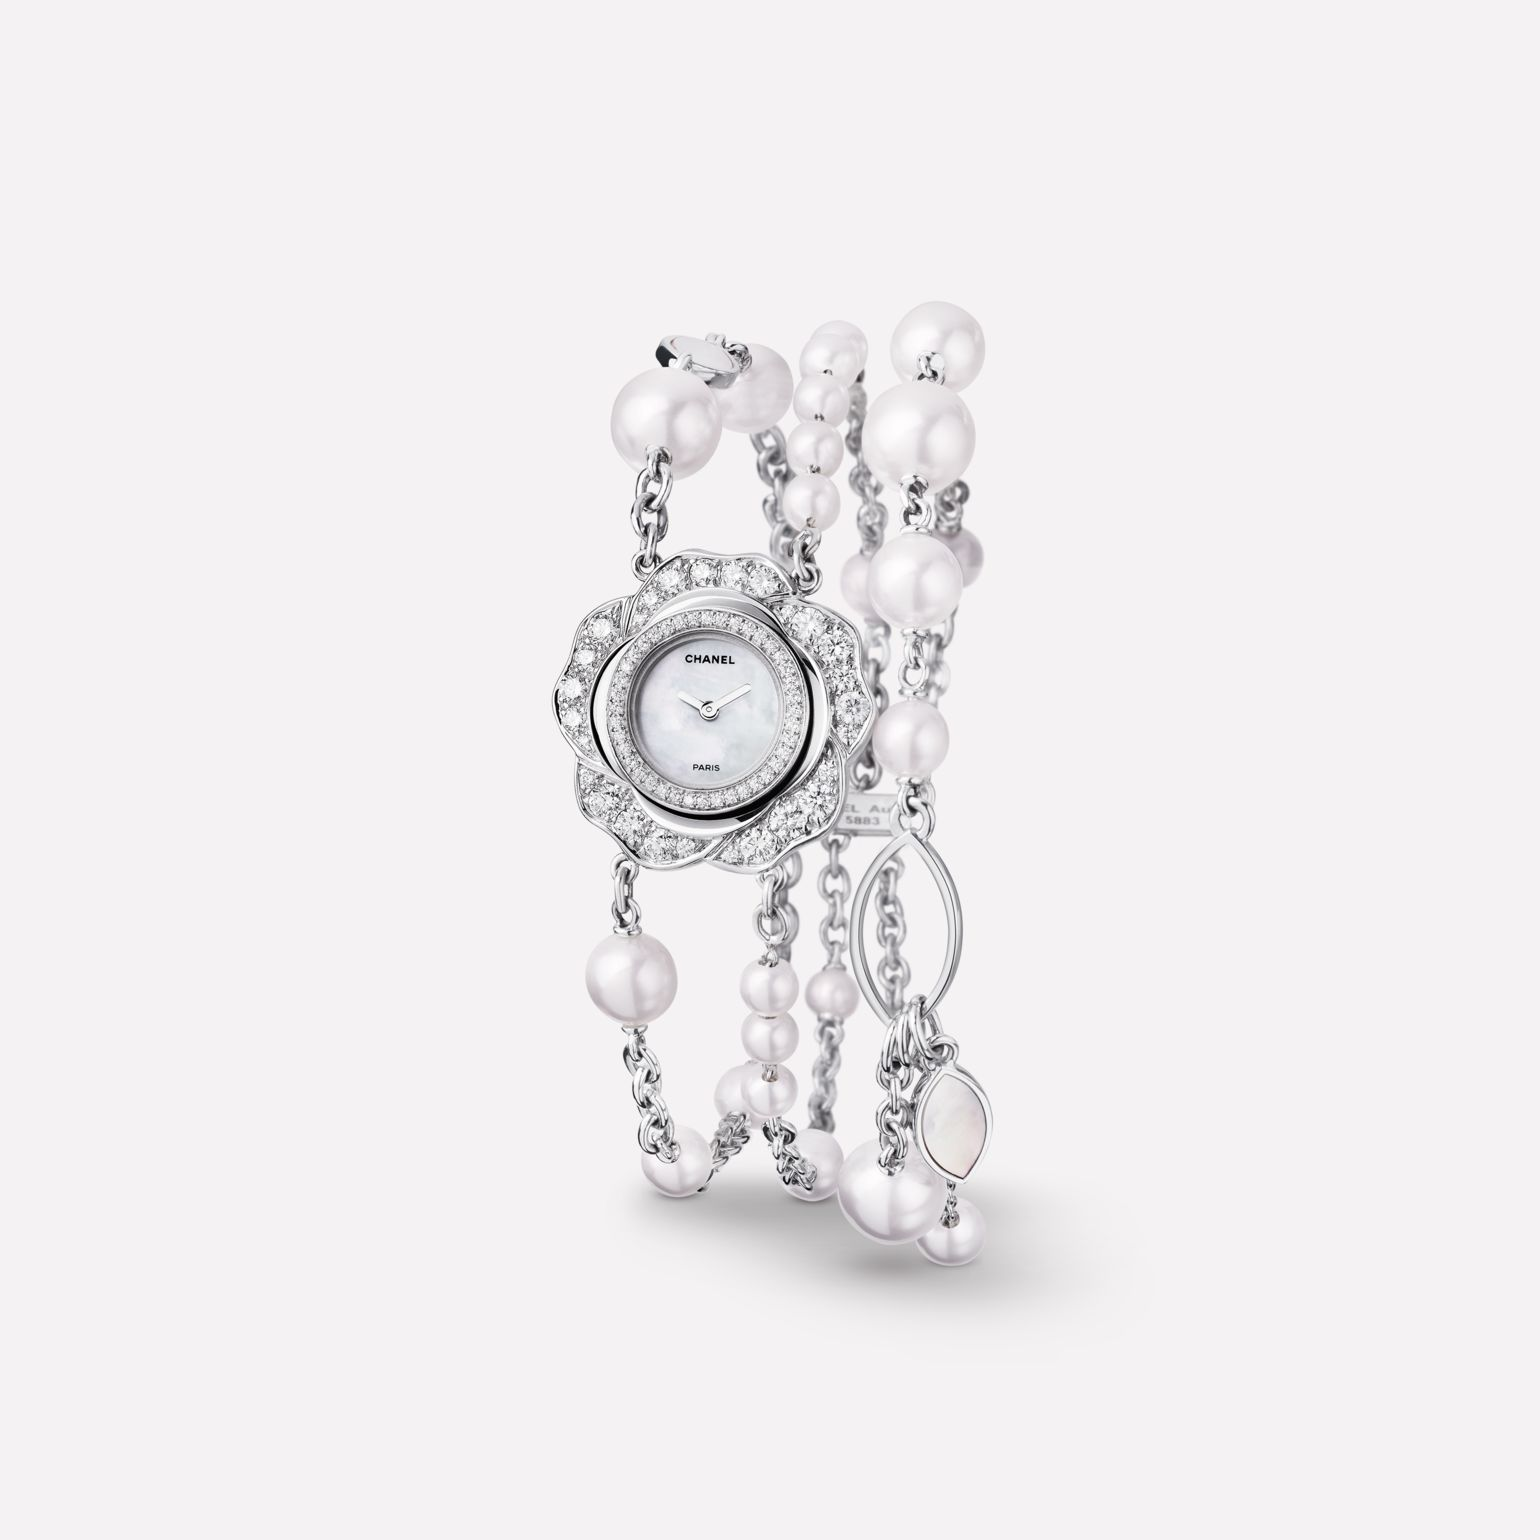 Camélia Jewelry Watch Camellia bud motif in 18K white gold, diamonds, and cultured pearls bracelet